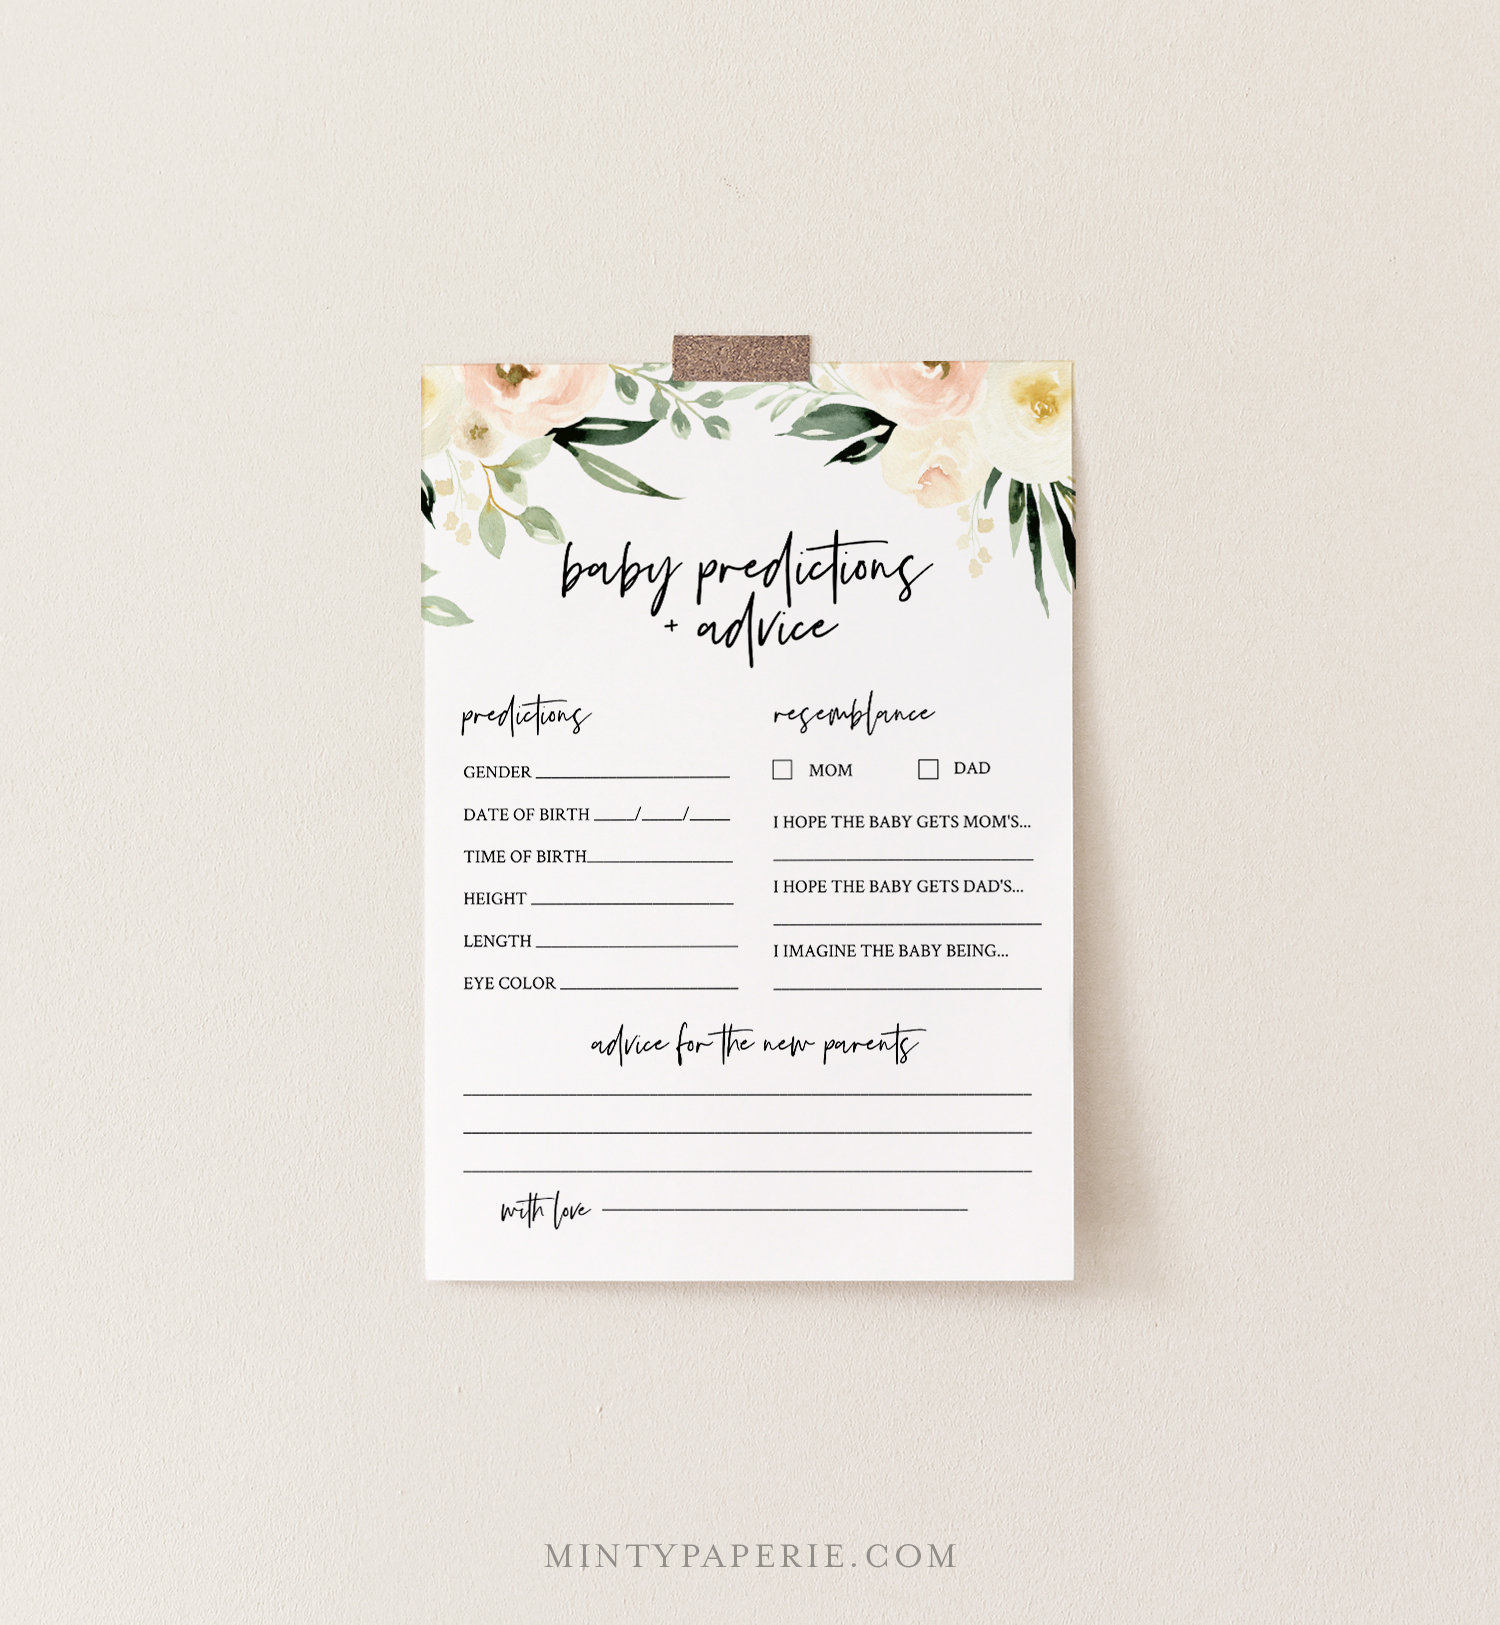 Baby Predictions And Advice Card, Printable Boho Floral Baby intended for Baby Prediction Template